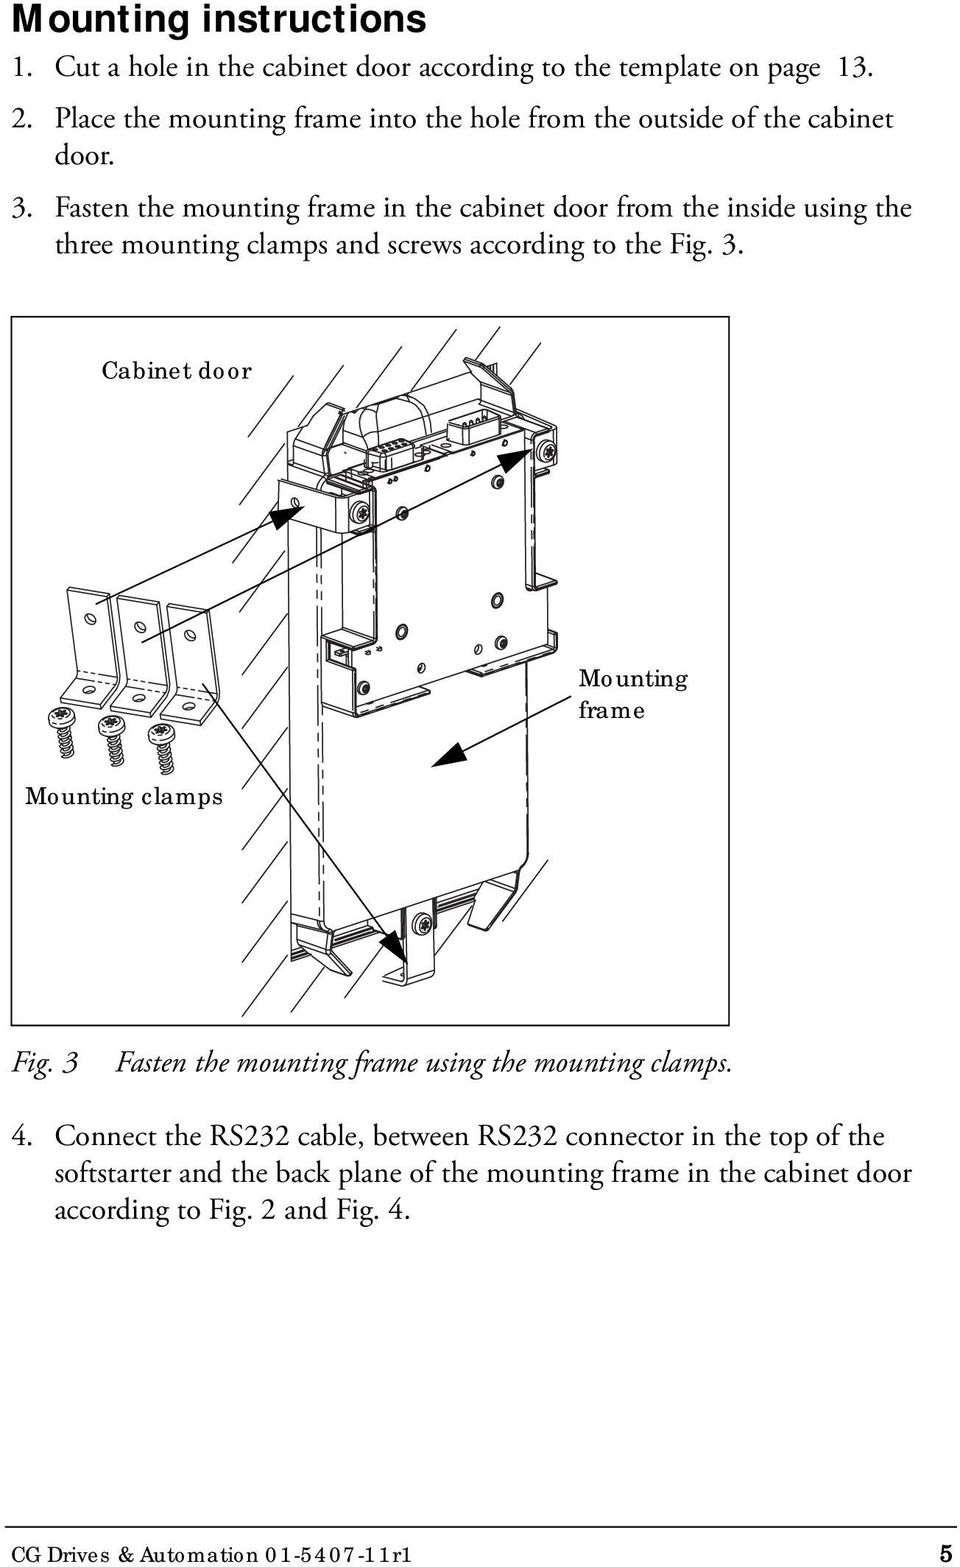 Fasten the mounting frame in the cabinet door from the inside using the three mounting clamps and screws according to the Fig. 3.